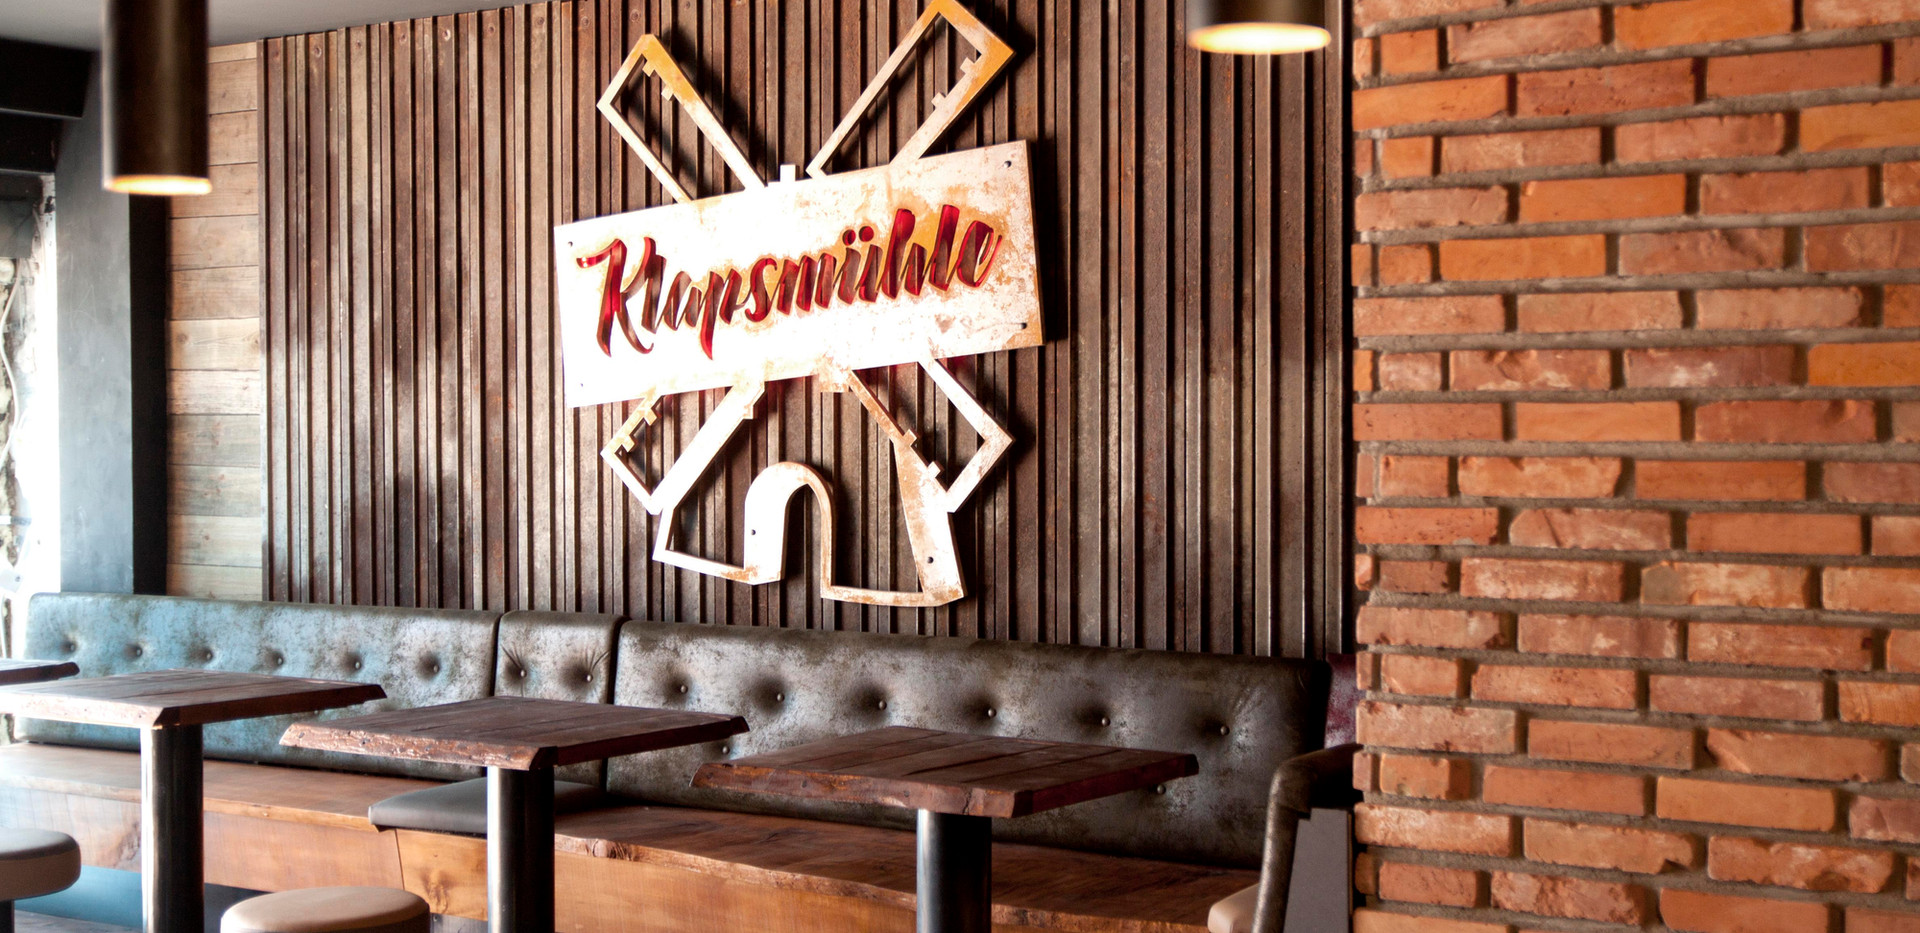 Klappsmühle Bar - Hamburg